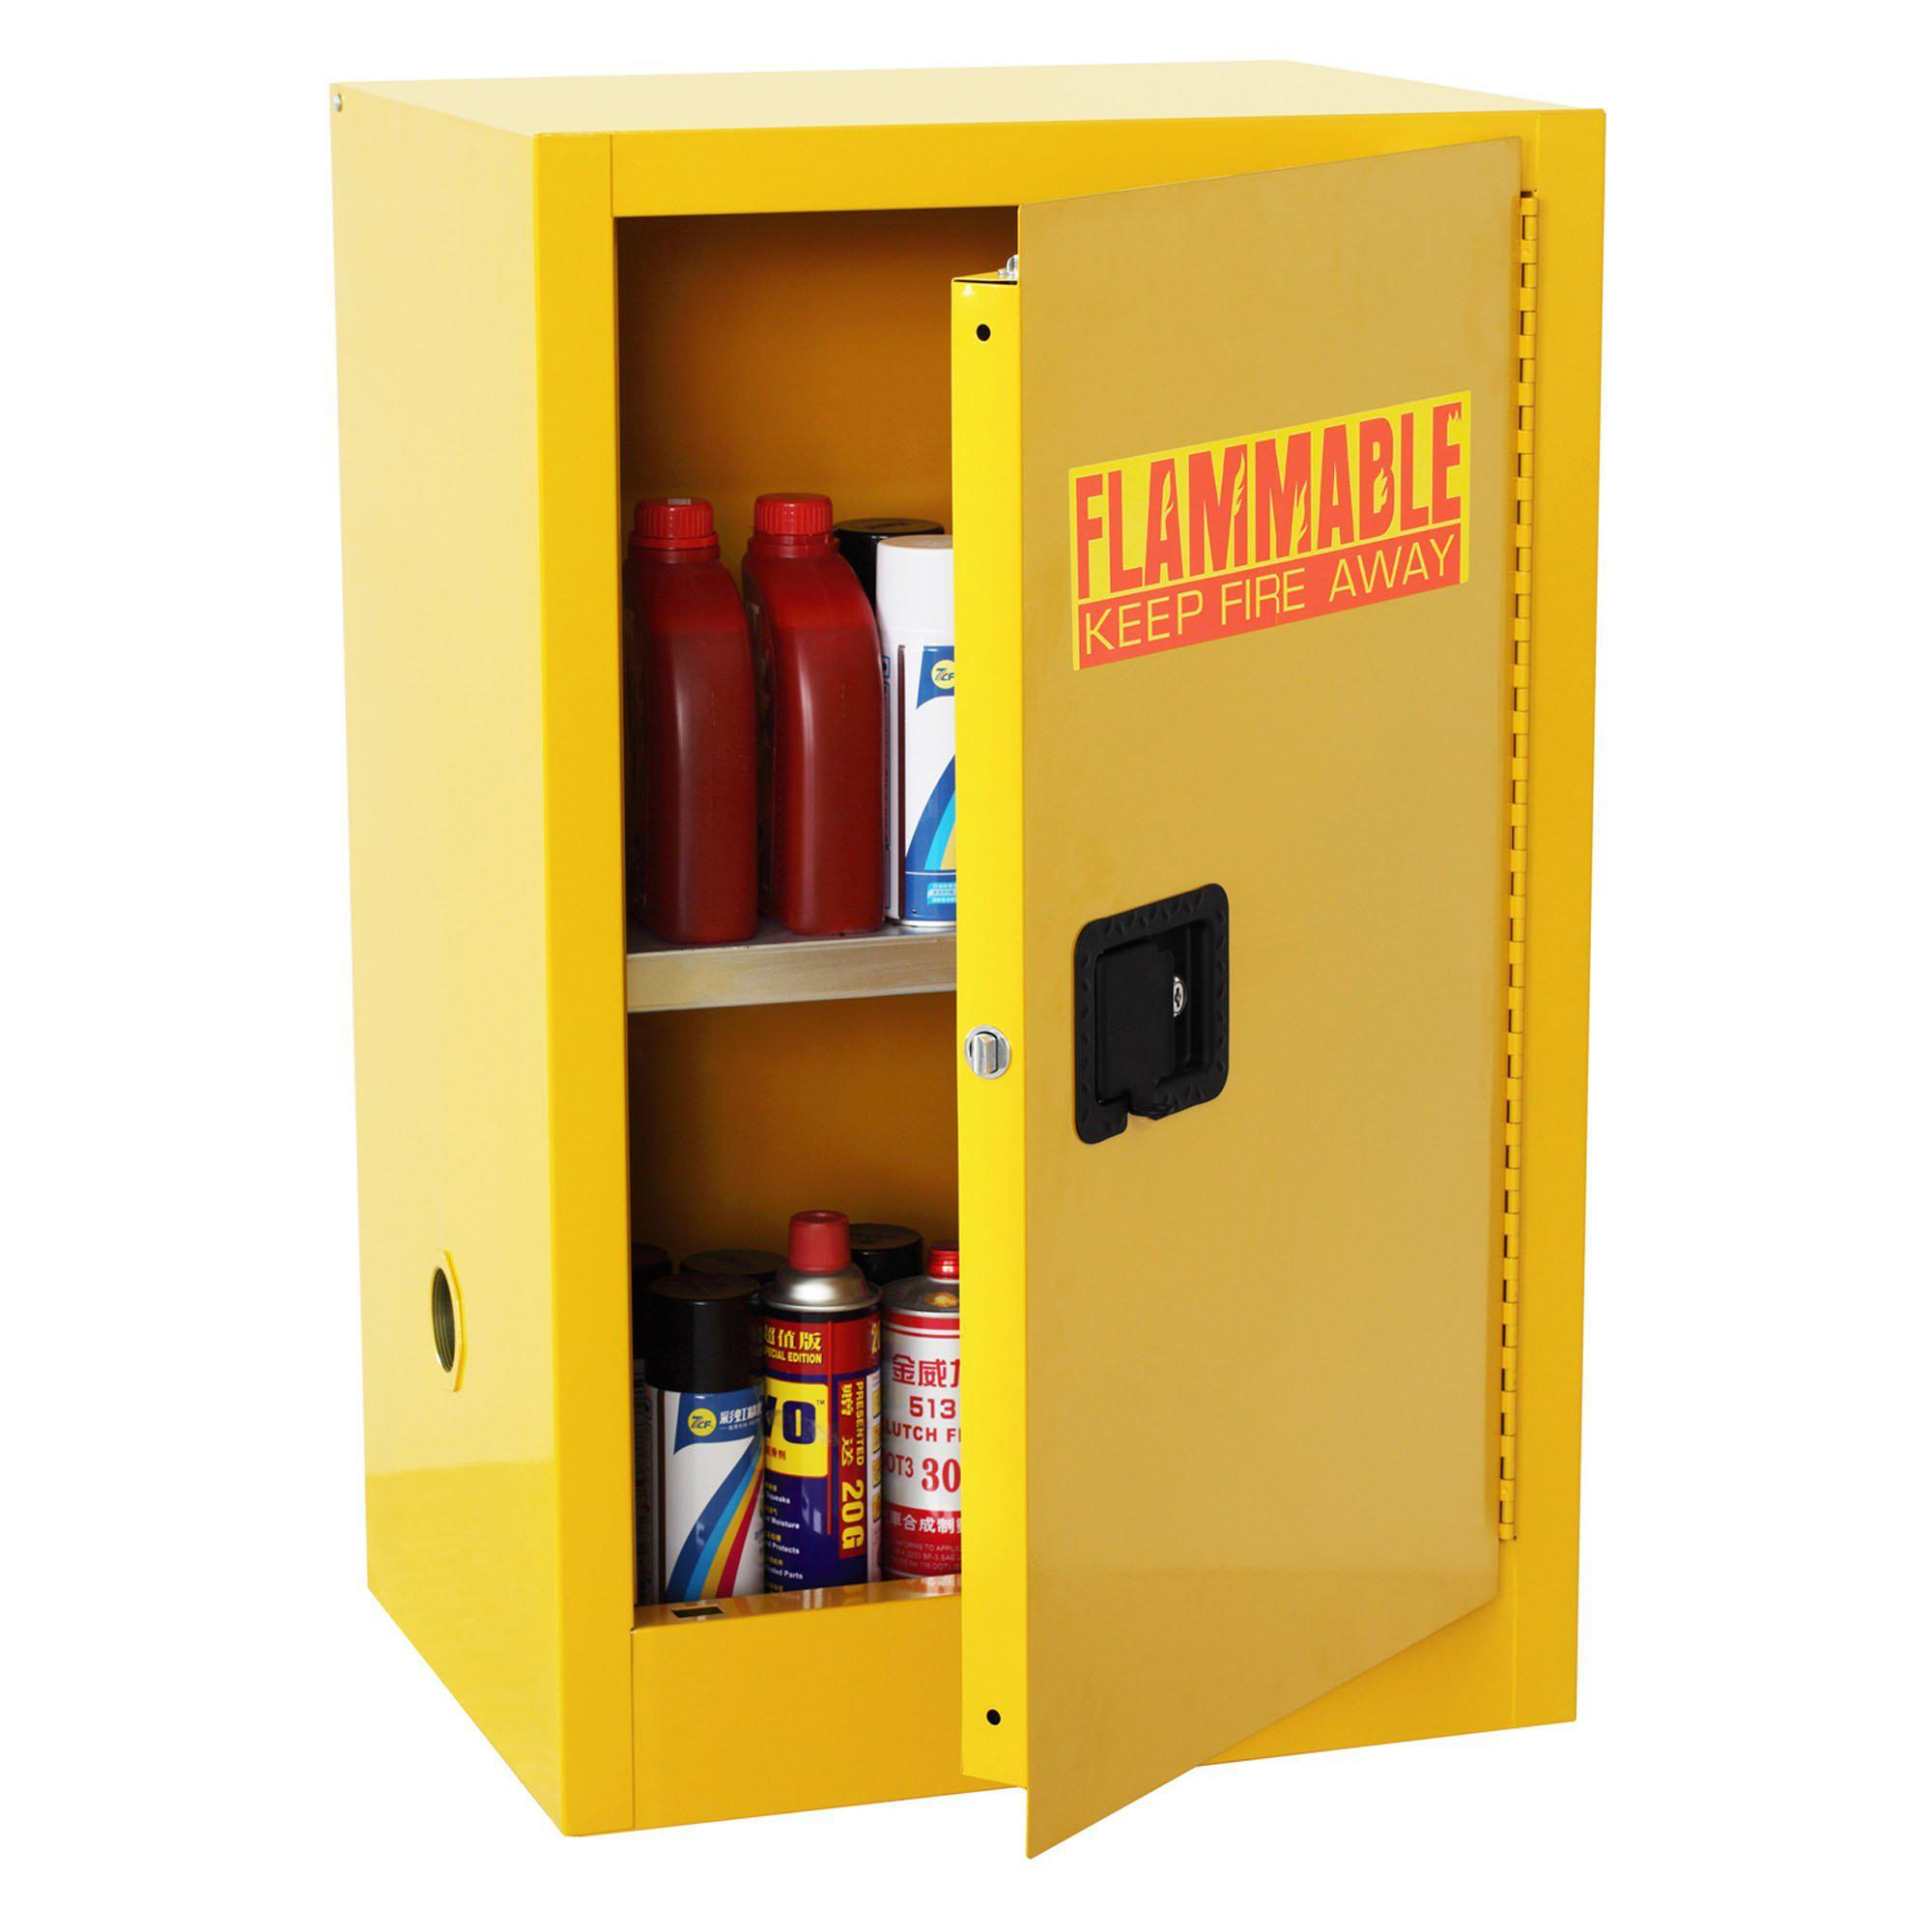 Compact Flammable Safety Cabinet with Single Door, Manual Close, 12 Gallon Capacity, Safety Yellow, 23 x 18 x 35